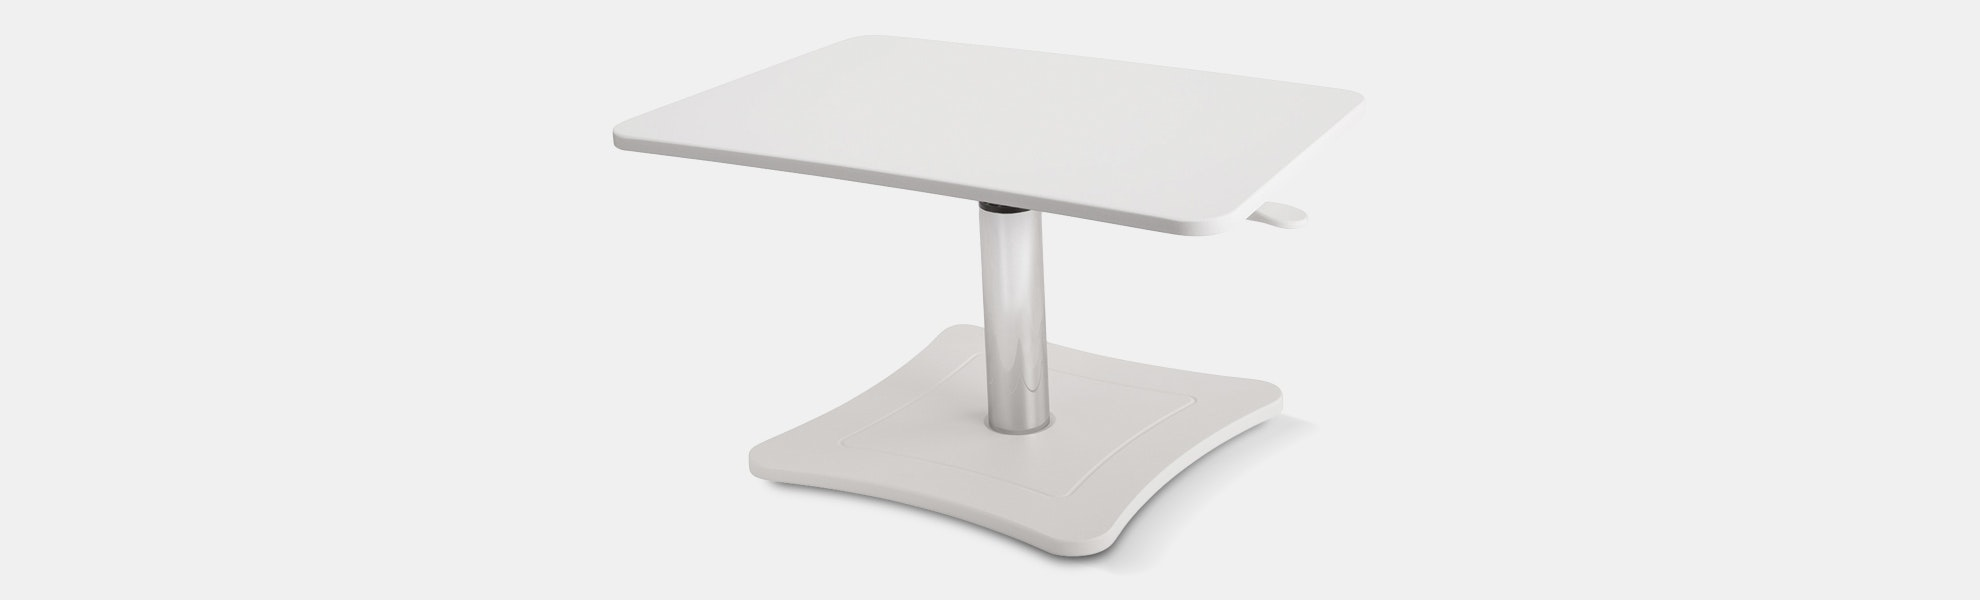 Victor Tech High-Rise Adjustable Laptop Stand